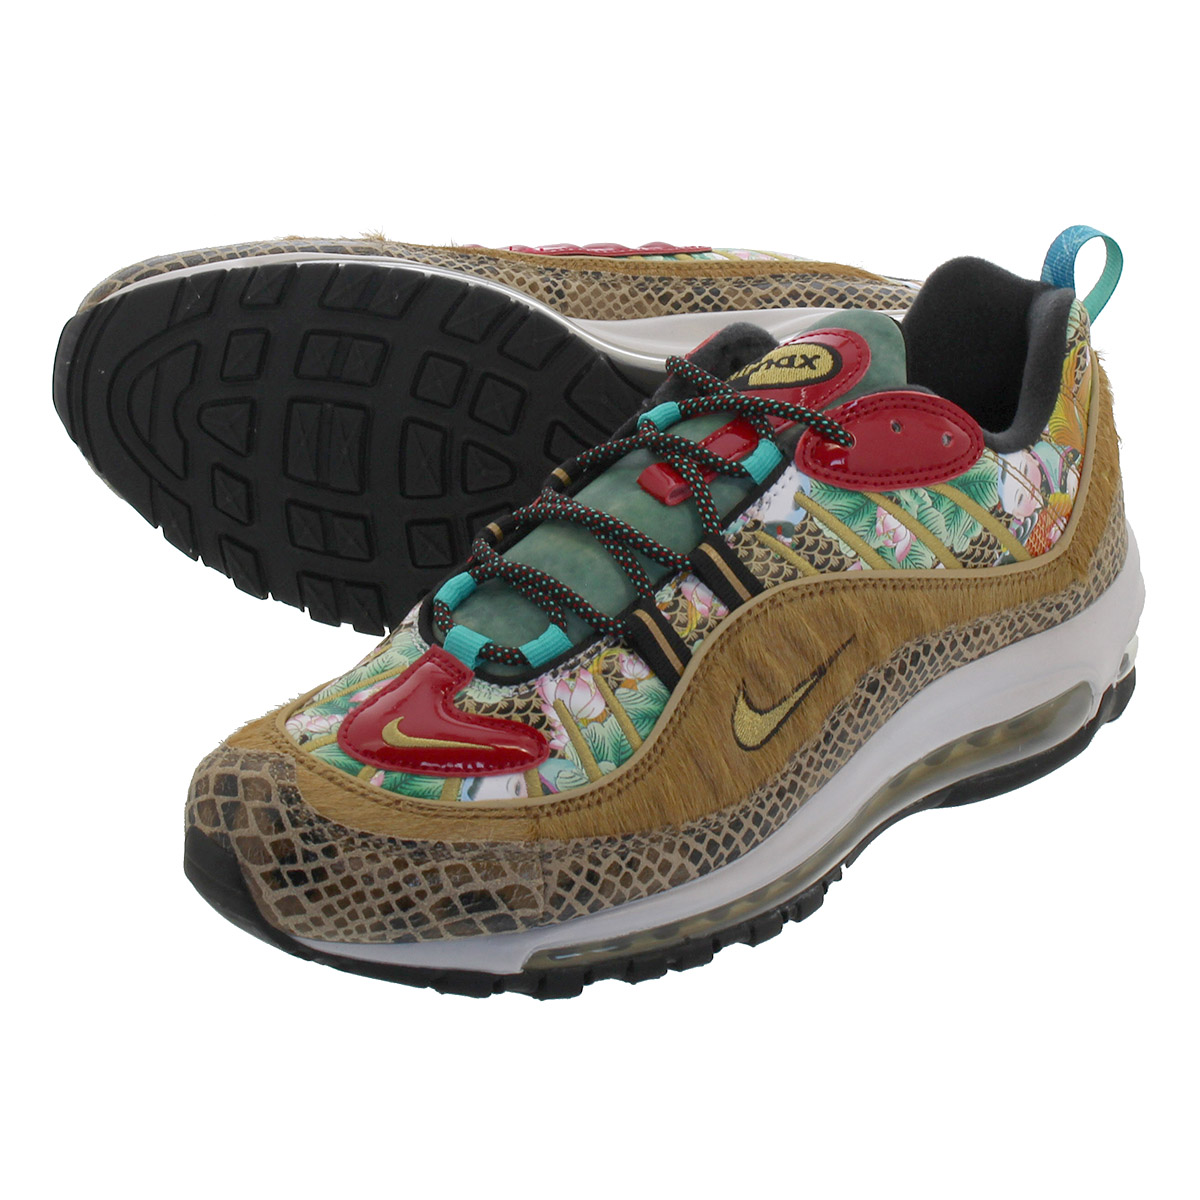 NIKE AIR MAX 98 【CHINESE NEW YEAR】 ナイキ エア マックス 98 WHEAT/METALLIC GOLD/BLACK bv6649-708